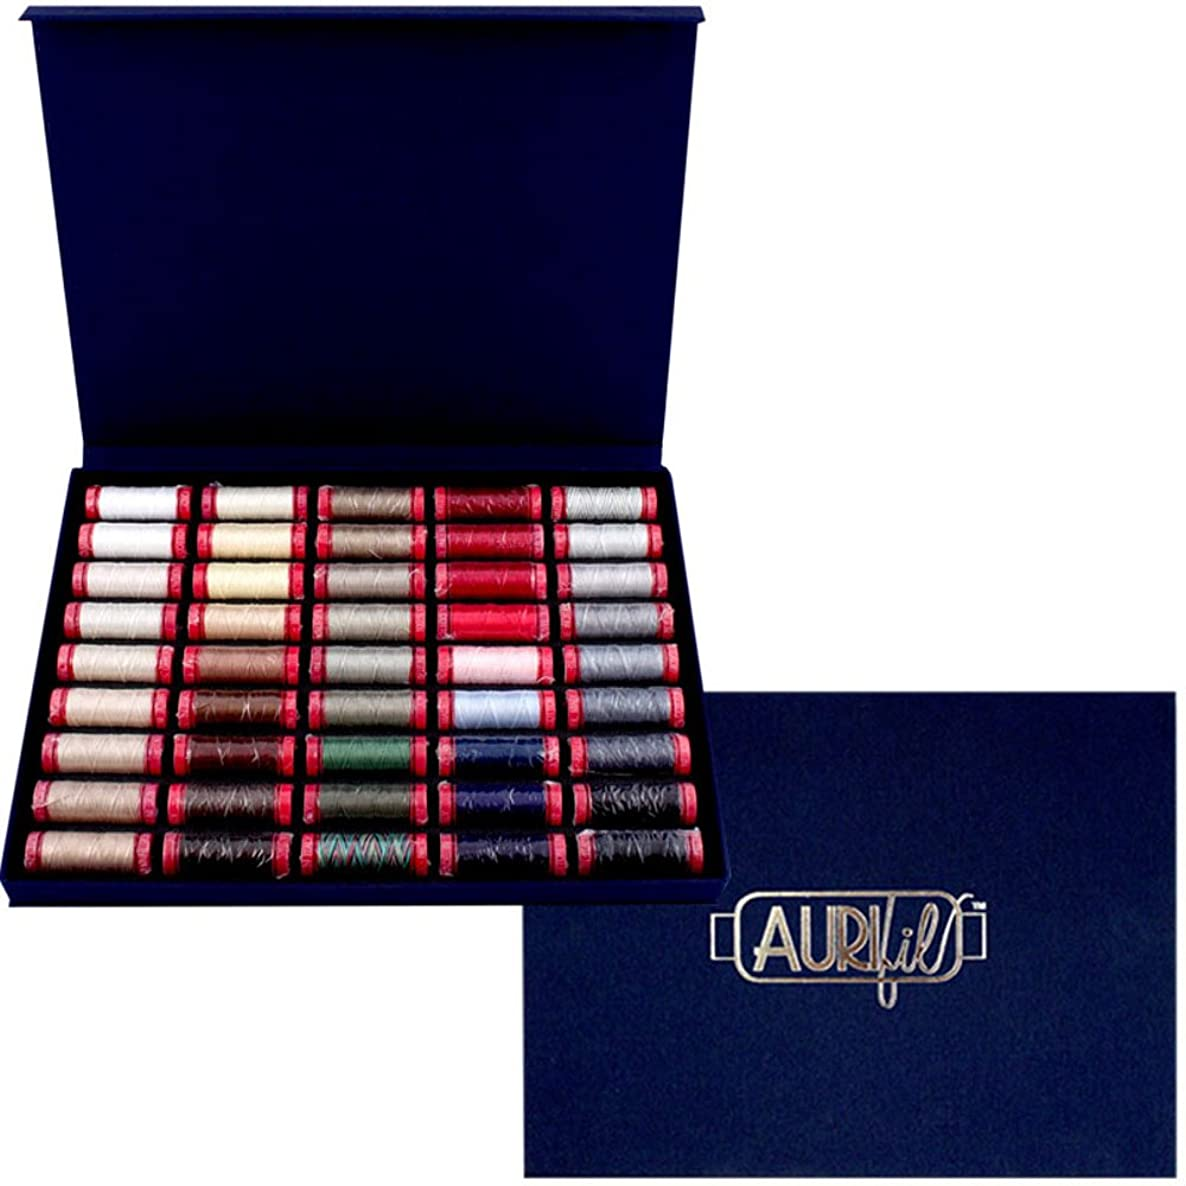 Best Selection Box Aurifil Thread Kit 45 Small Spools 12 Weight ABSC12